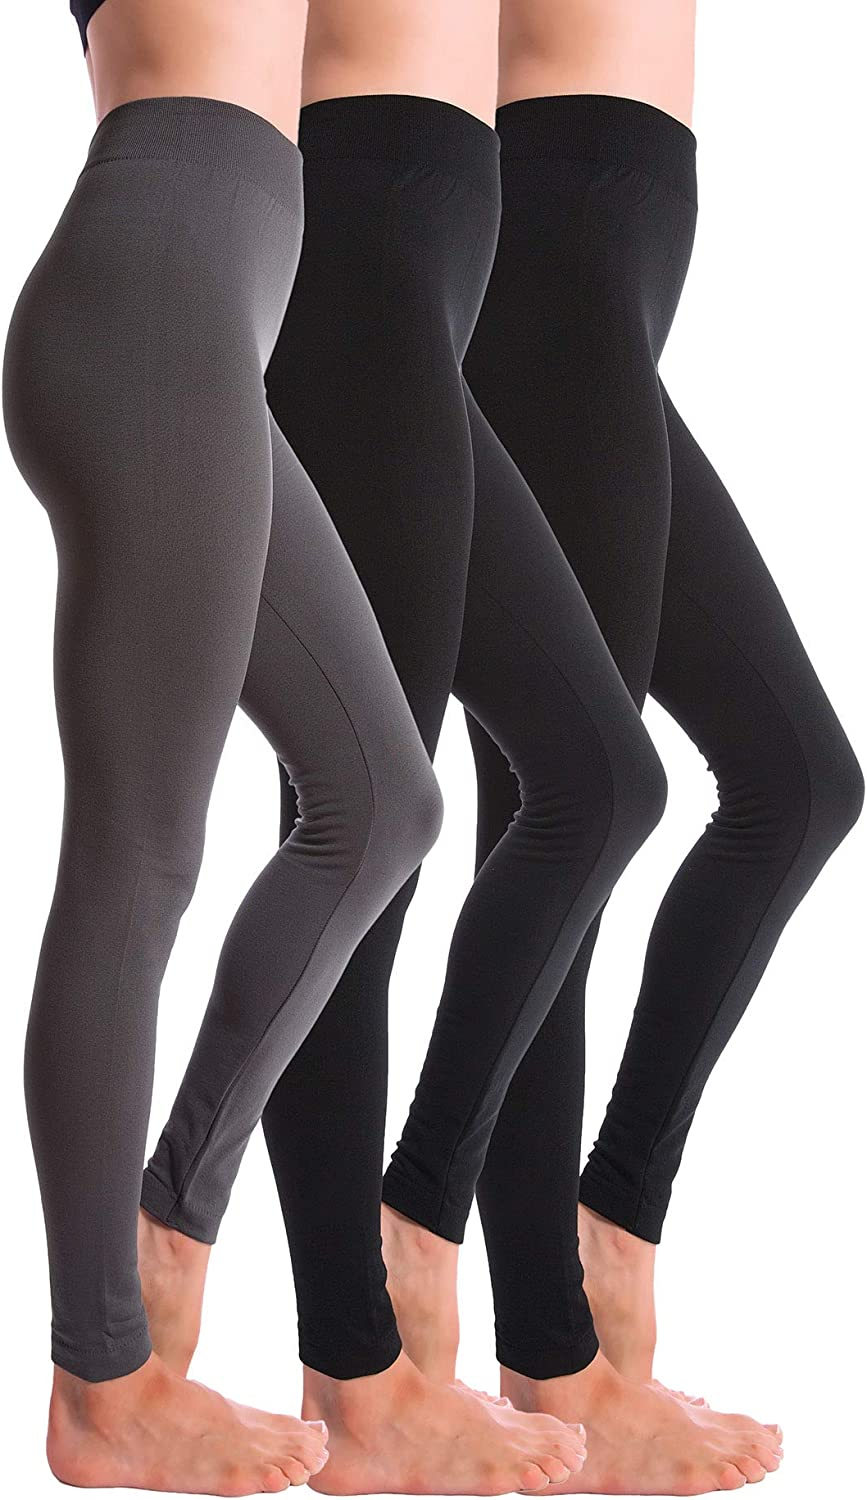 3 Pack Fleece Lined Thick Brushed Leggings Thights By Homma Amazon Ca Luggage Bags